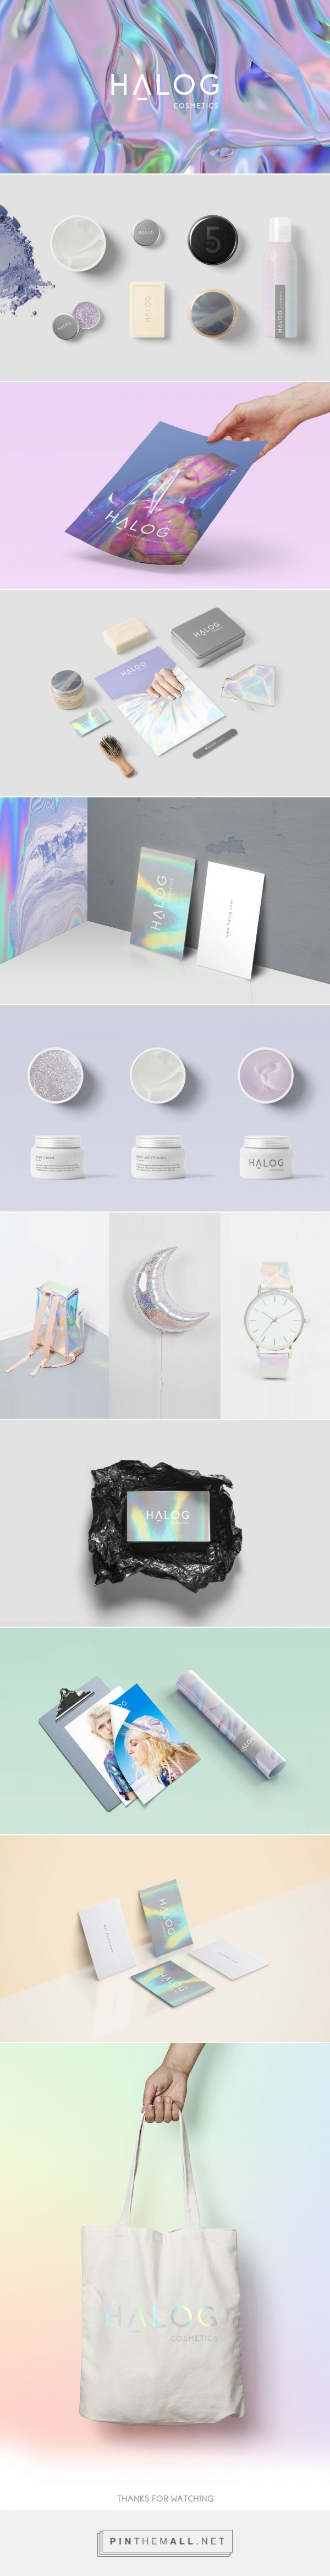 Halog Cosmetics Branding by Katerina Petridou | Fivestar Branding Agency – Design and Branding Agency & Inspiration Gallery